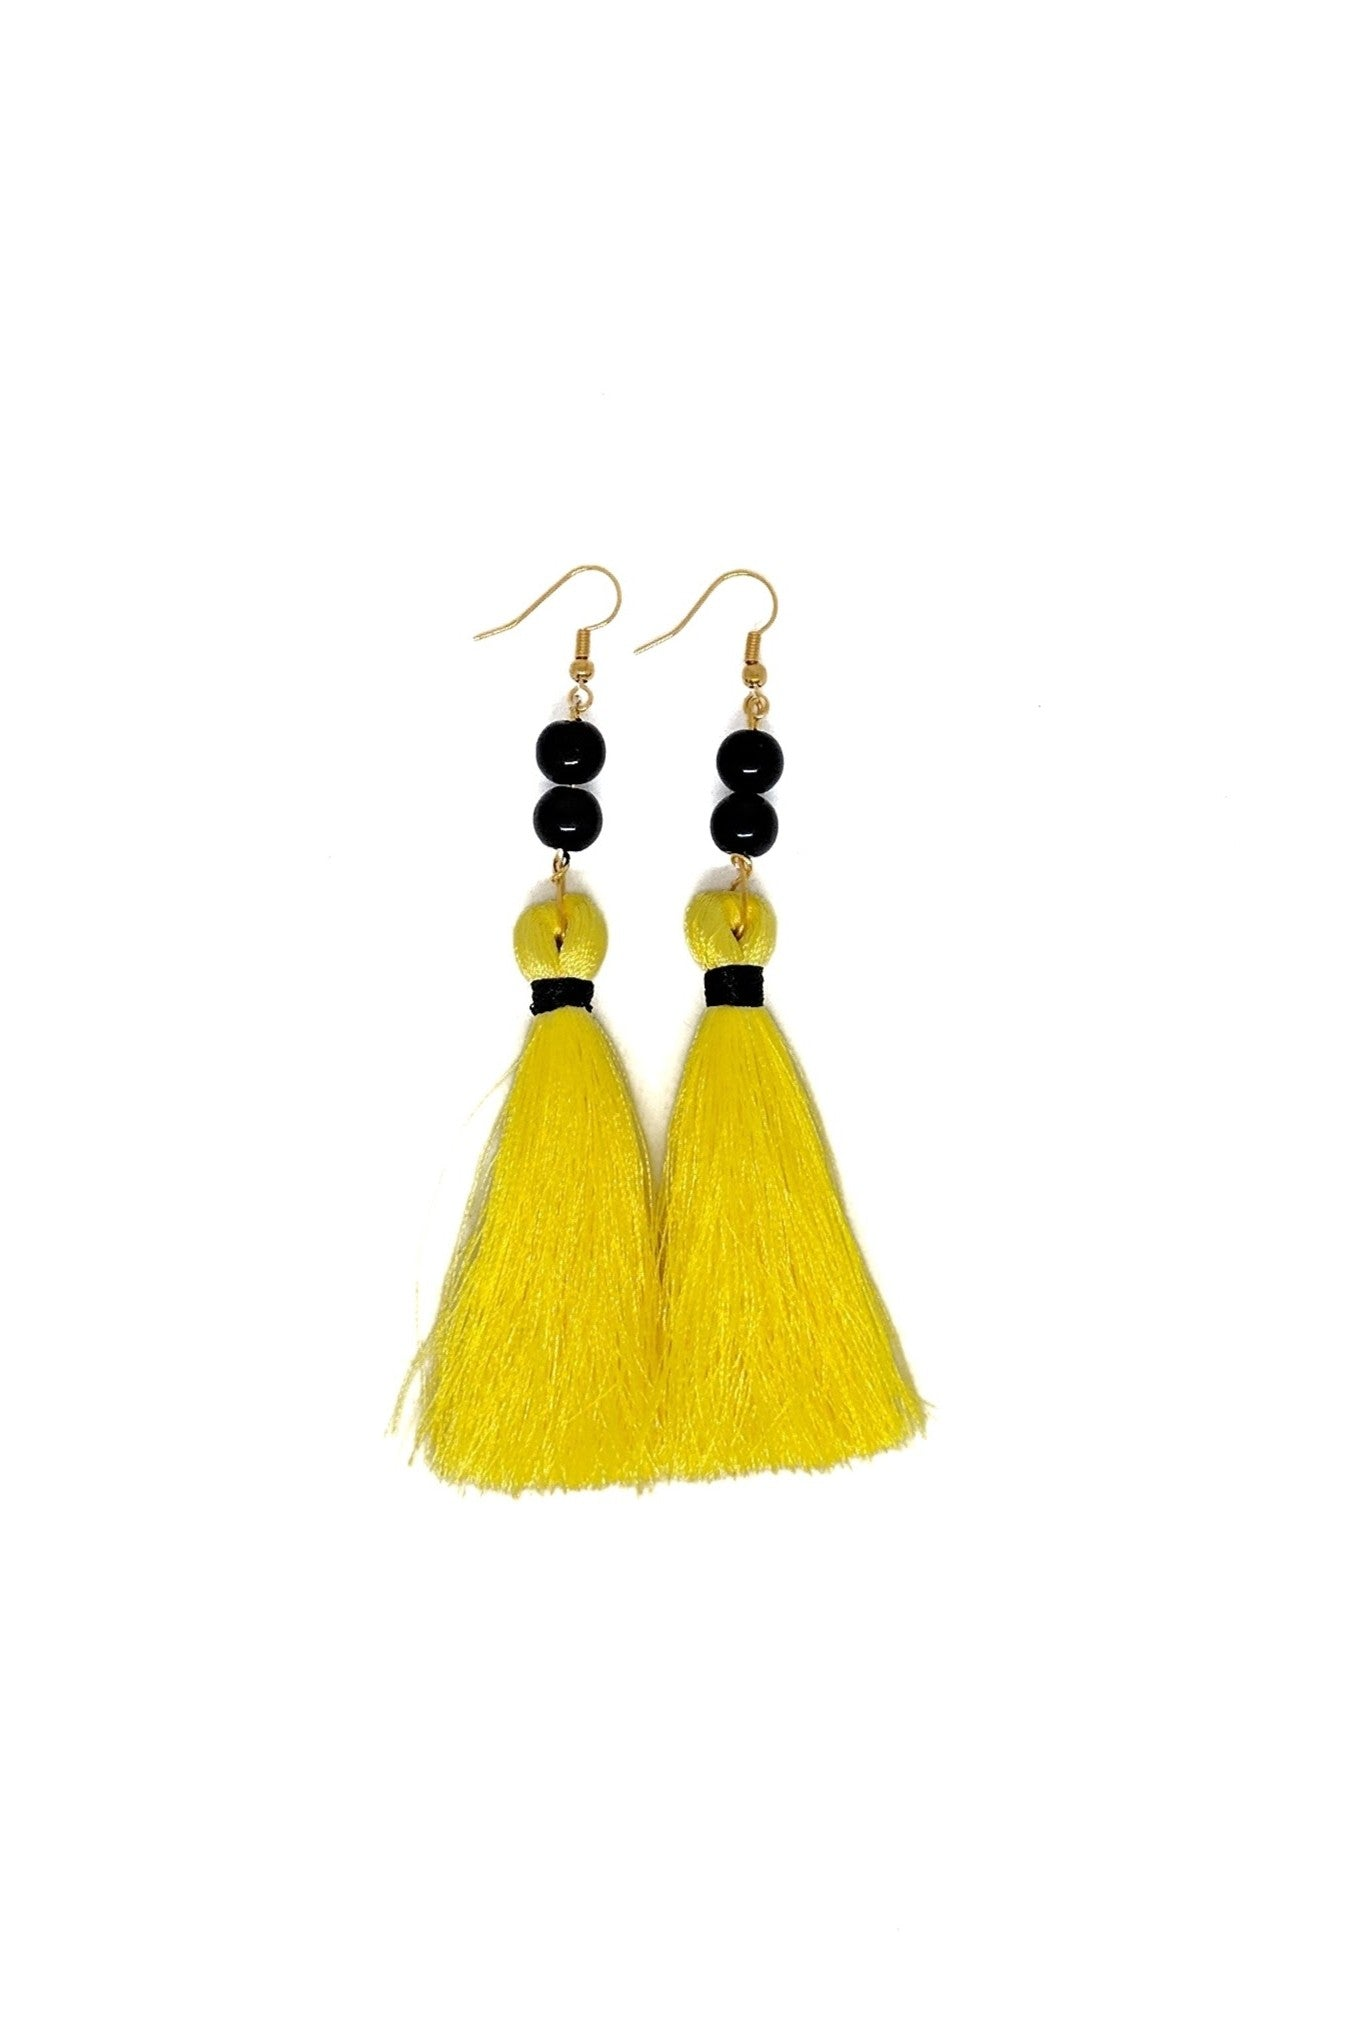 NEON YELLOW WITH BLACK BEADS TASSLE EARRINGS